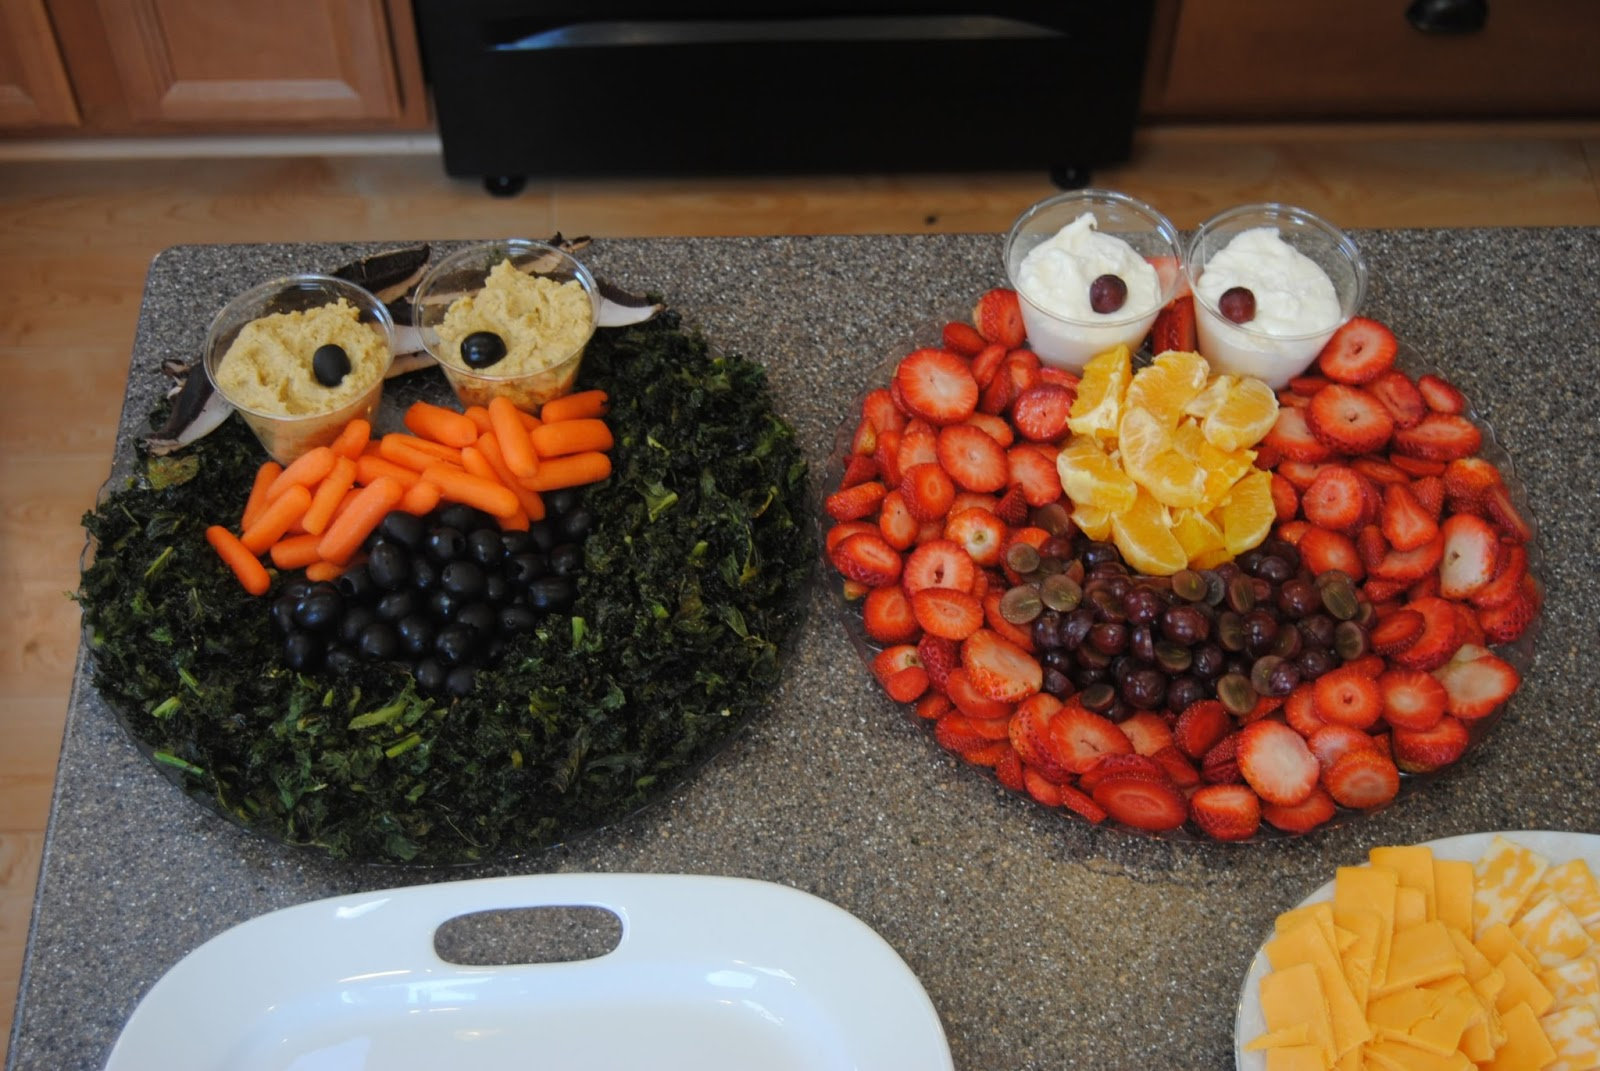 Homemade by holman aubreys elmo birthday party oscar and elmo vegetable and fruit platters filmwisefo